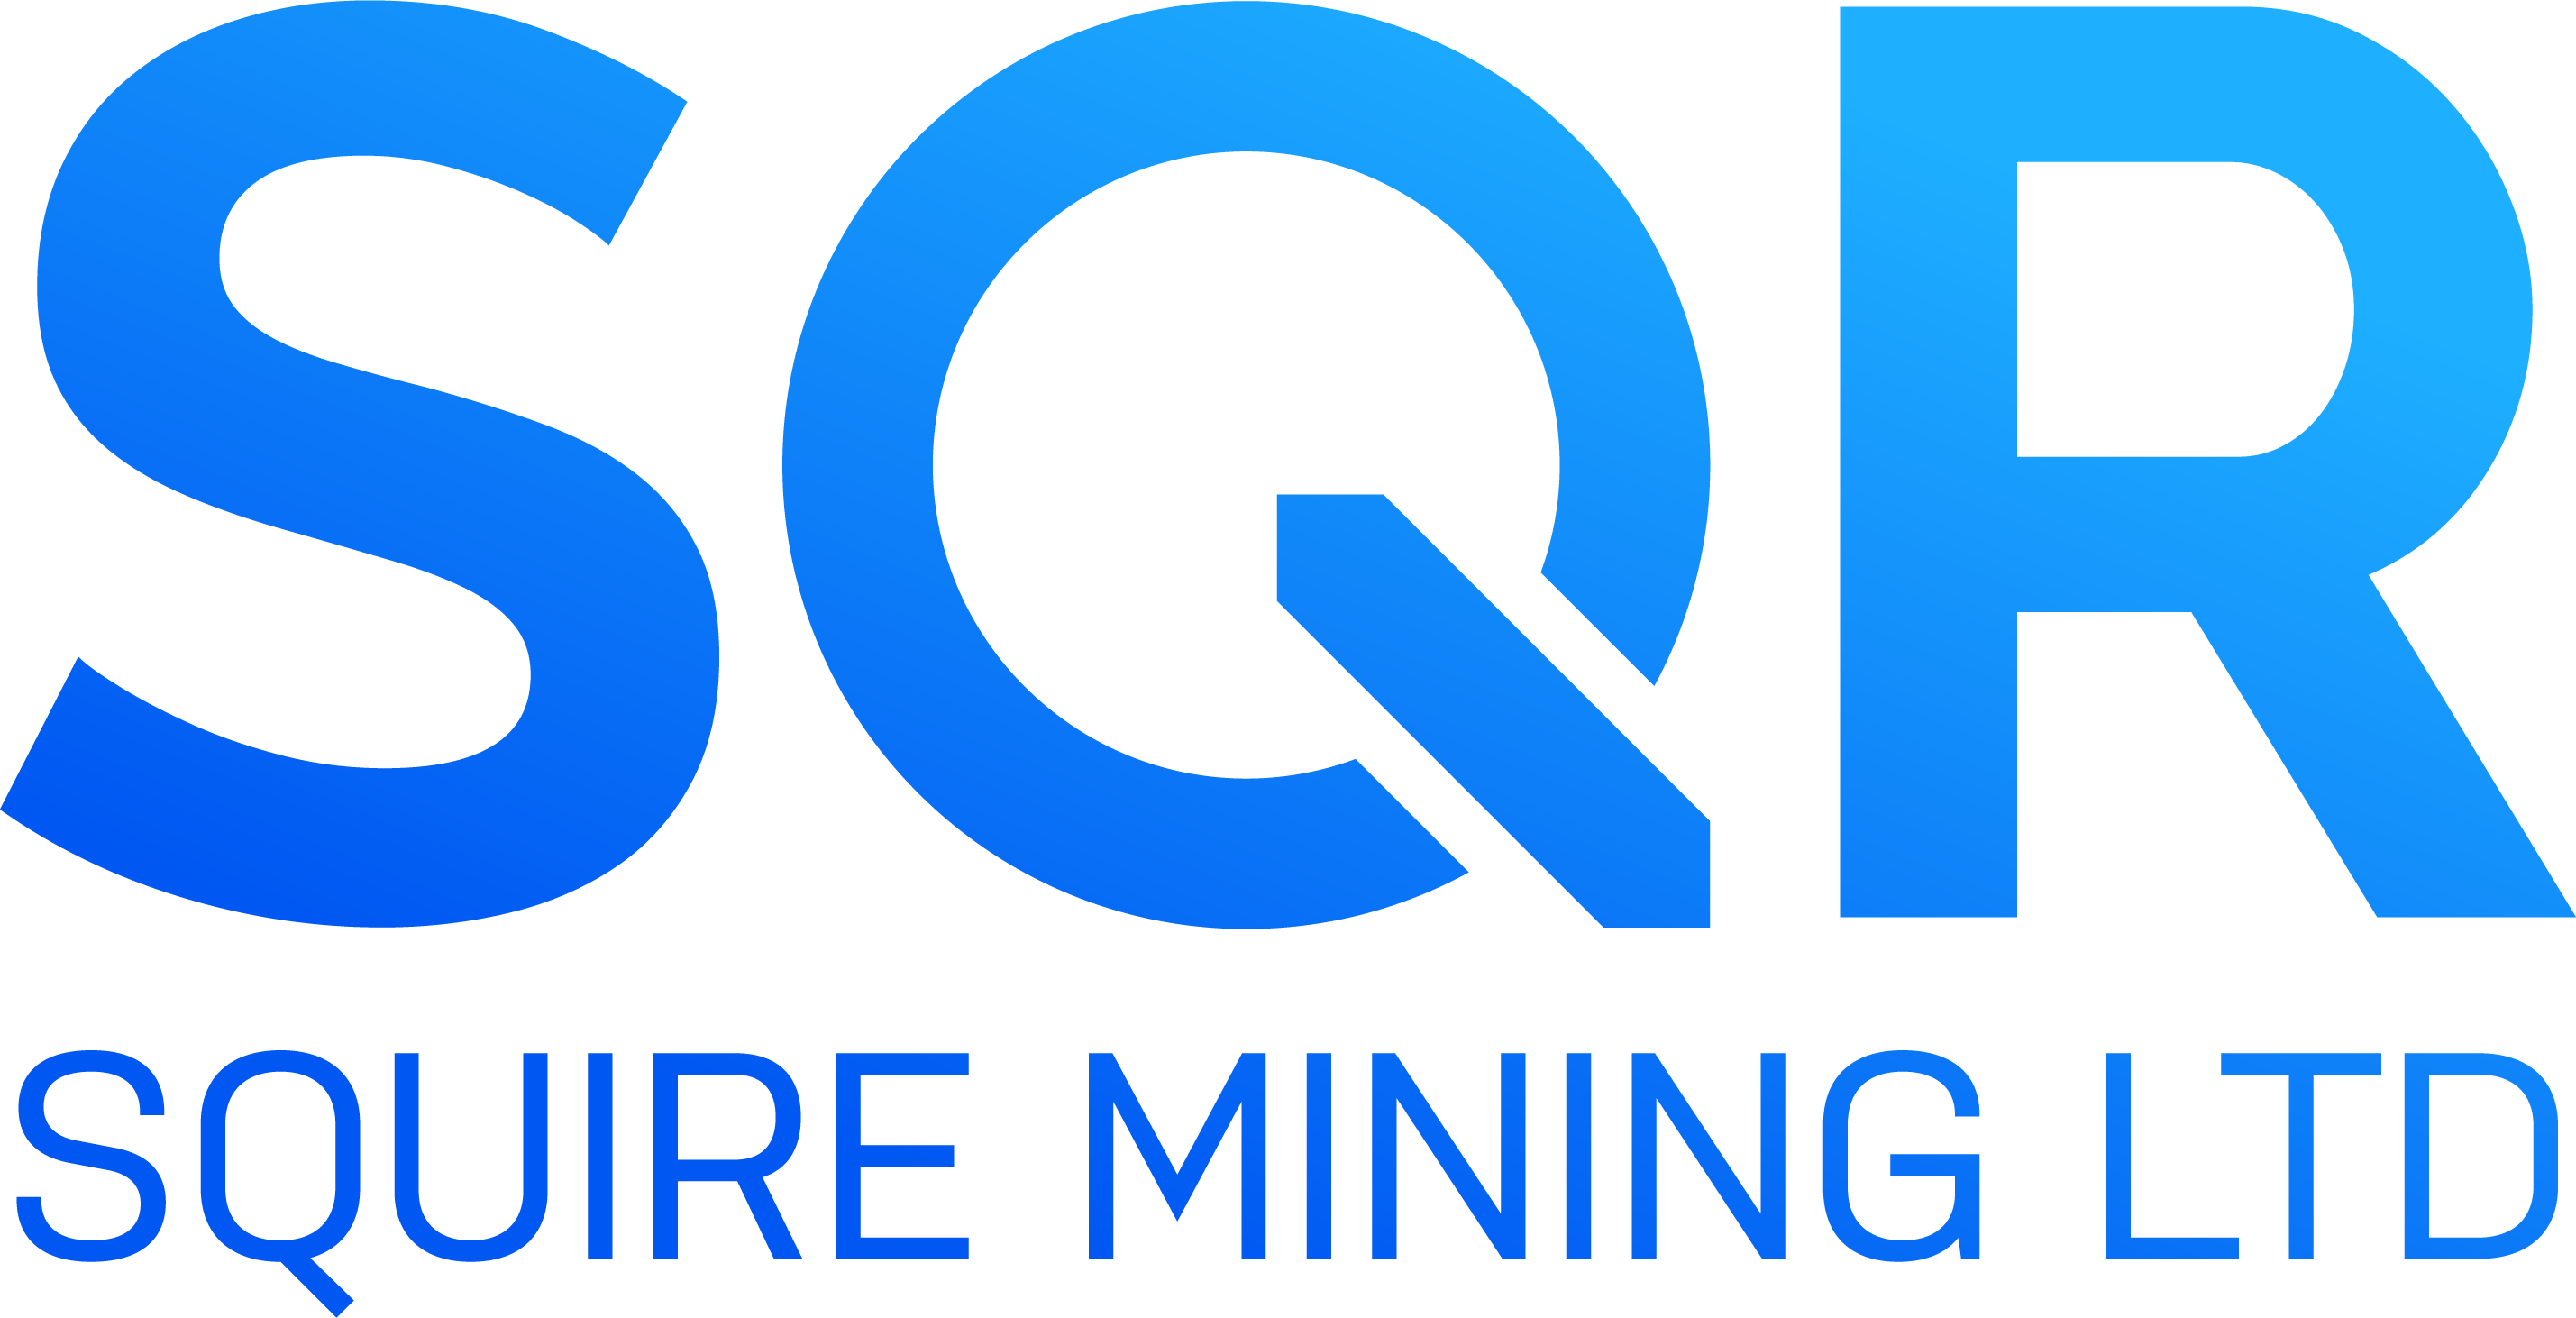 Squire Mining Ltd. (SQR.CN) – Canadian Stock Exchange, CSE, sliding ticker